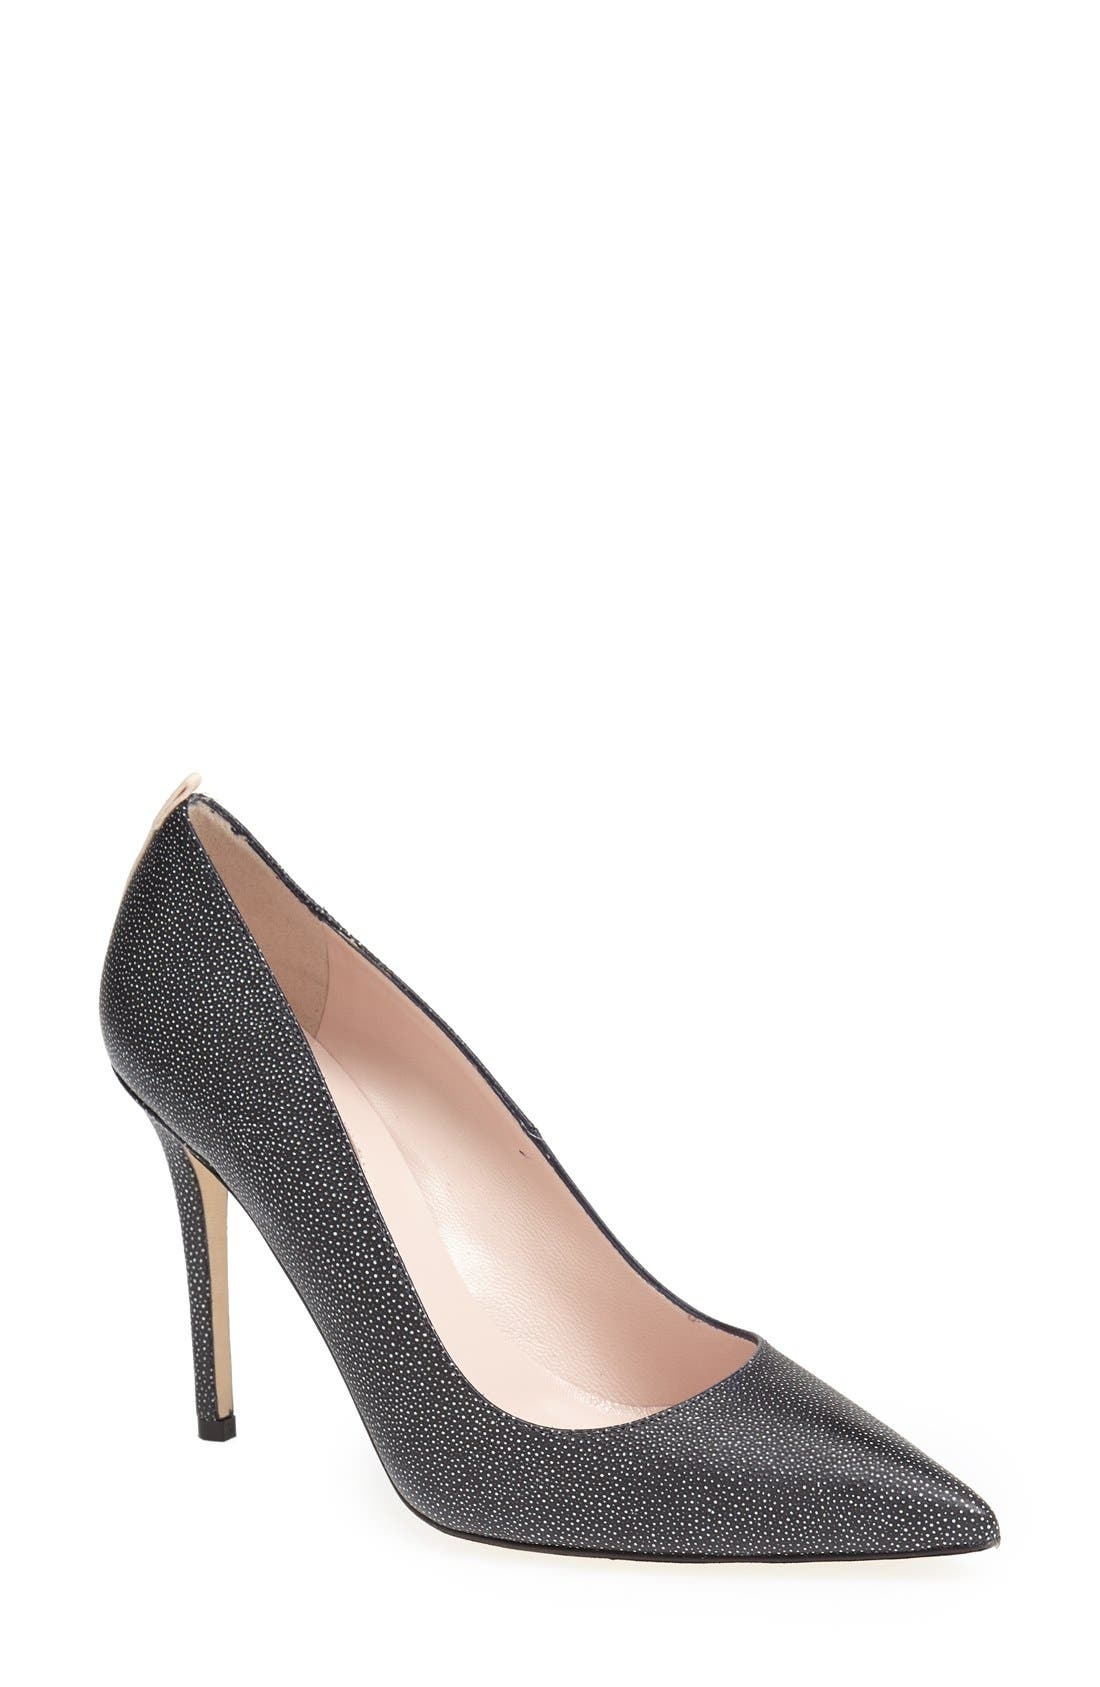 Alternate Image 1 Selected - SJP 'Fawn 100' Pump (Women)